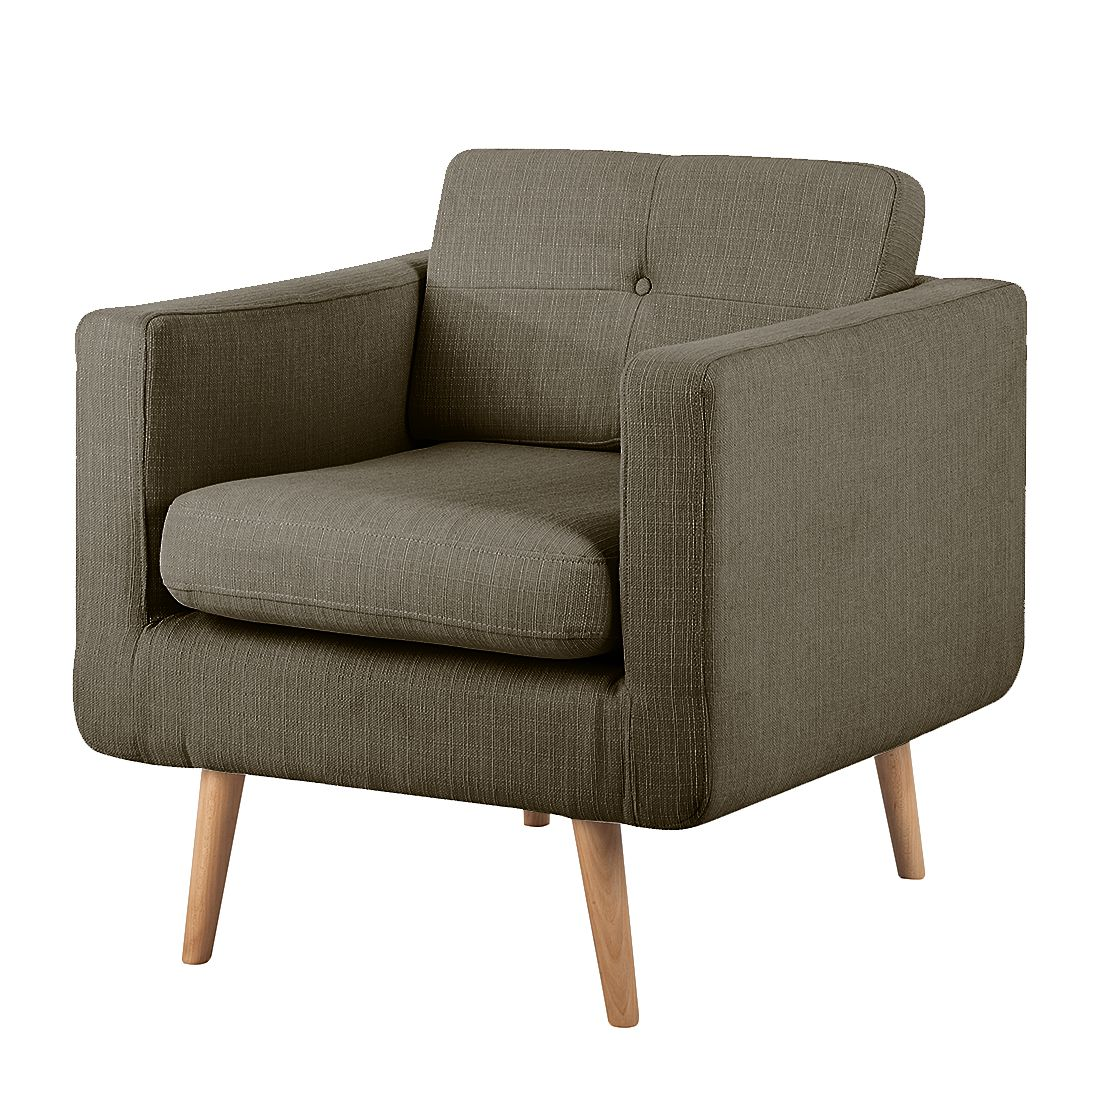 Home24 meubels fauteuils morteens for Home 24 sessel